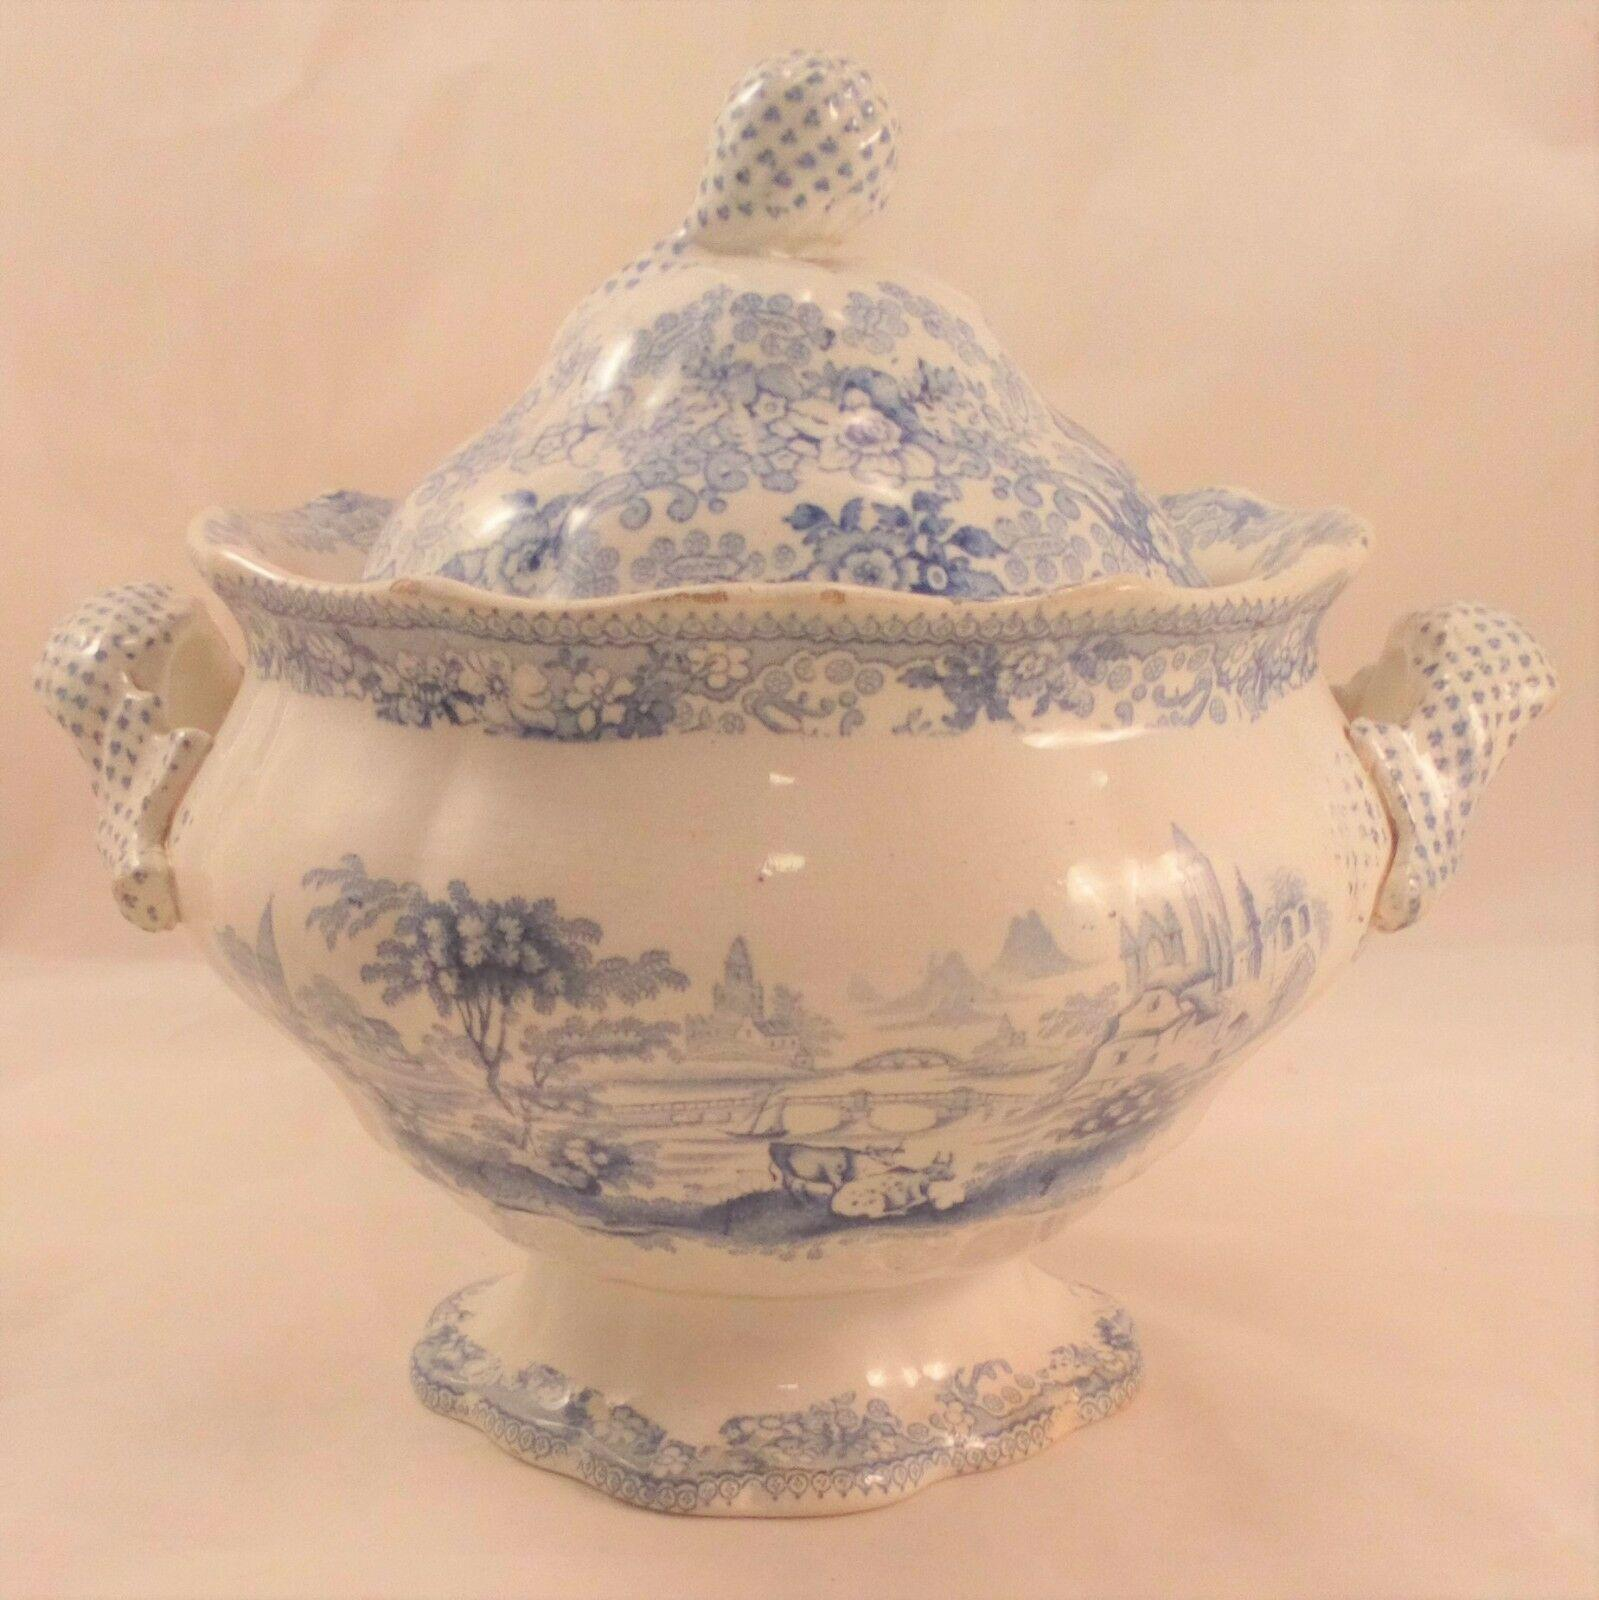 Antique Blue and White Transferware Sauce Tureen River Landscape circa 1850